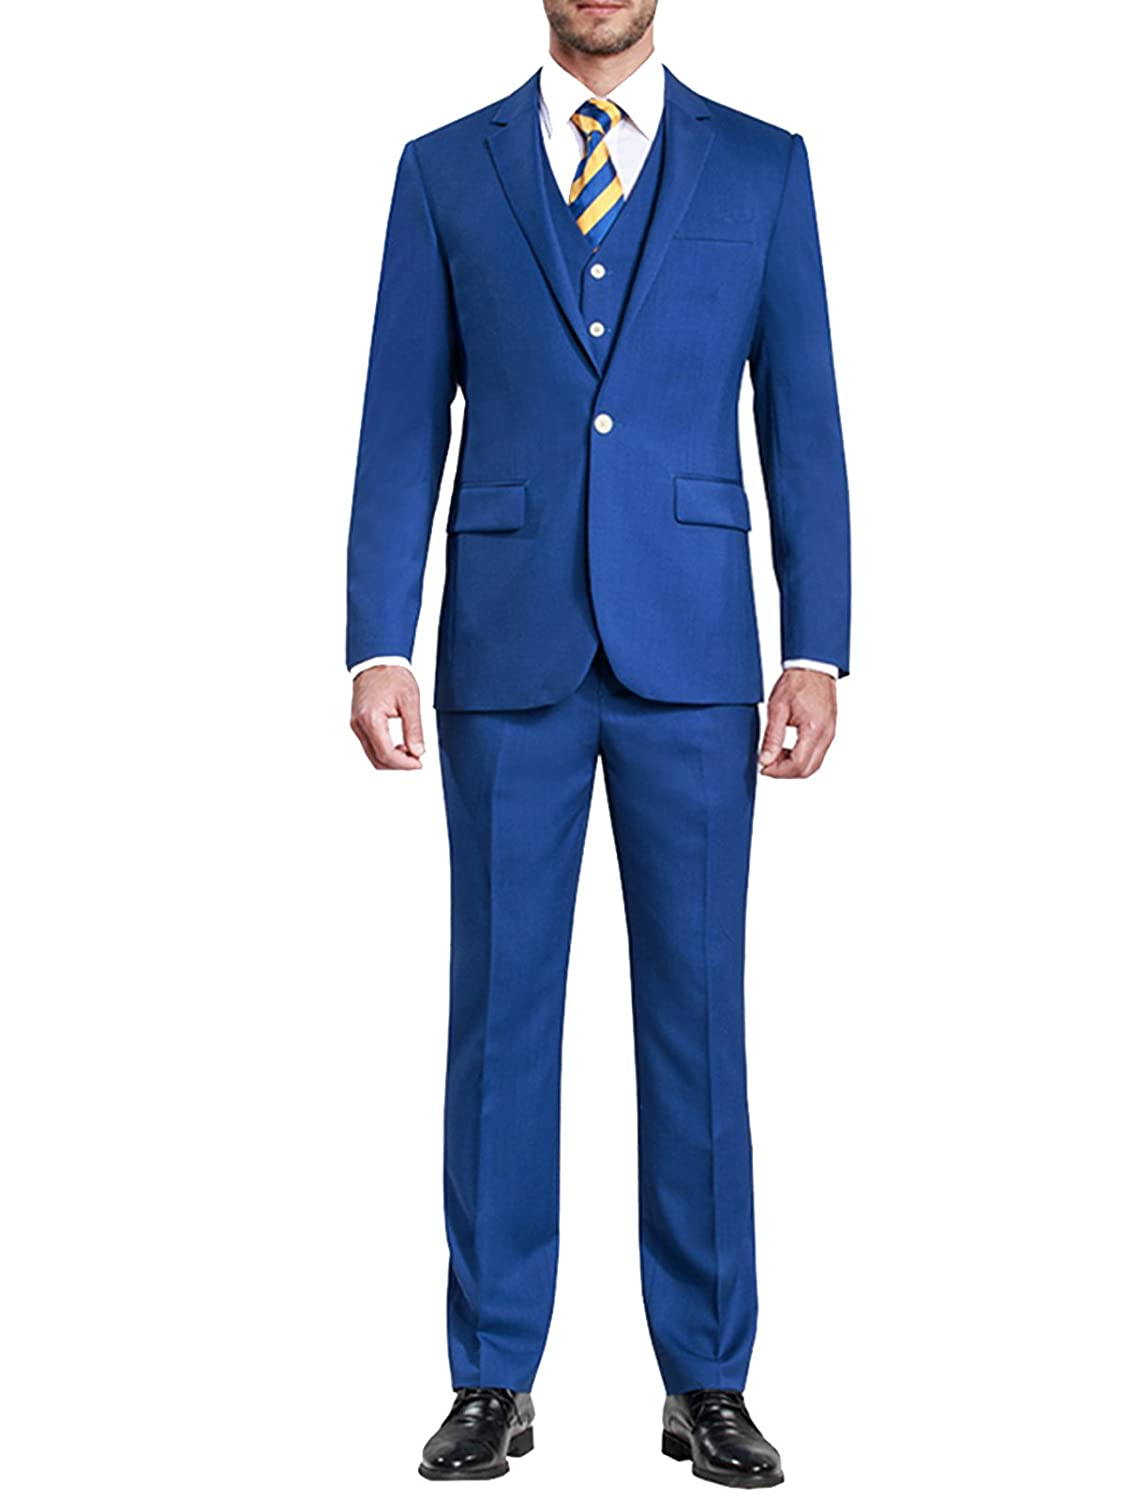 HBDesign Mens 3 Piece 1 Button Notch Lapel Slim Fit Pure Formal Suit Blue HMS5002BL